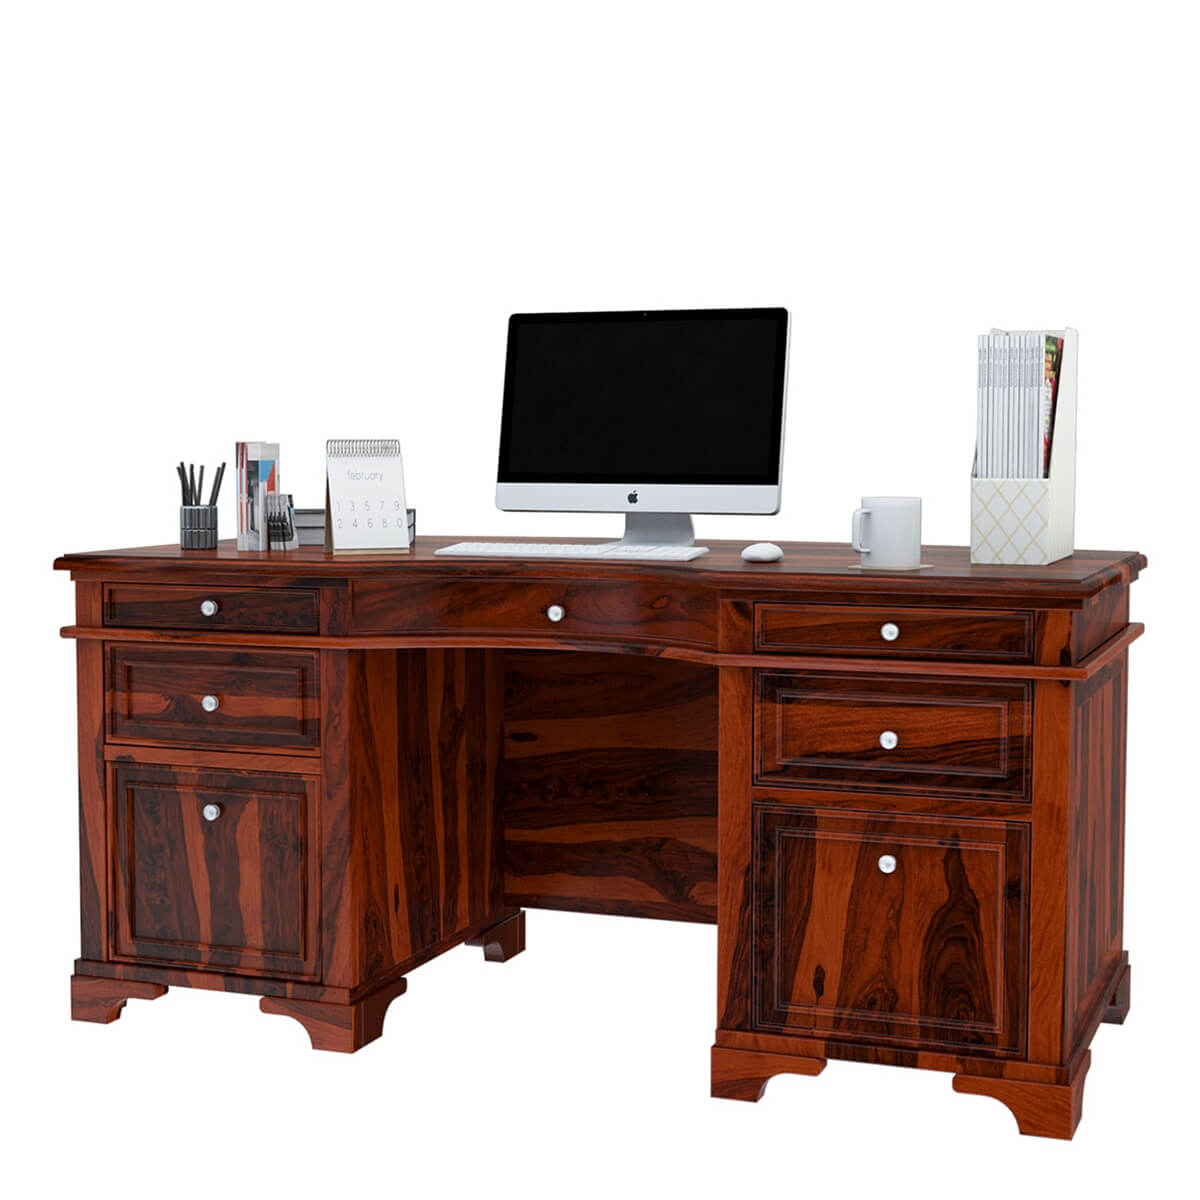 Victorian Style Rustic Solid Wood Executive Desk